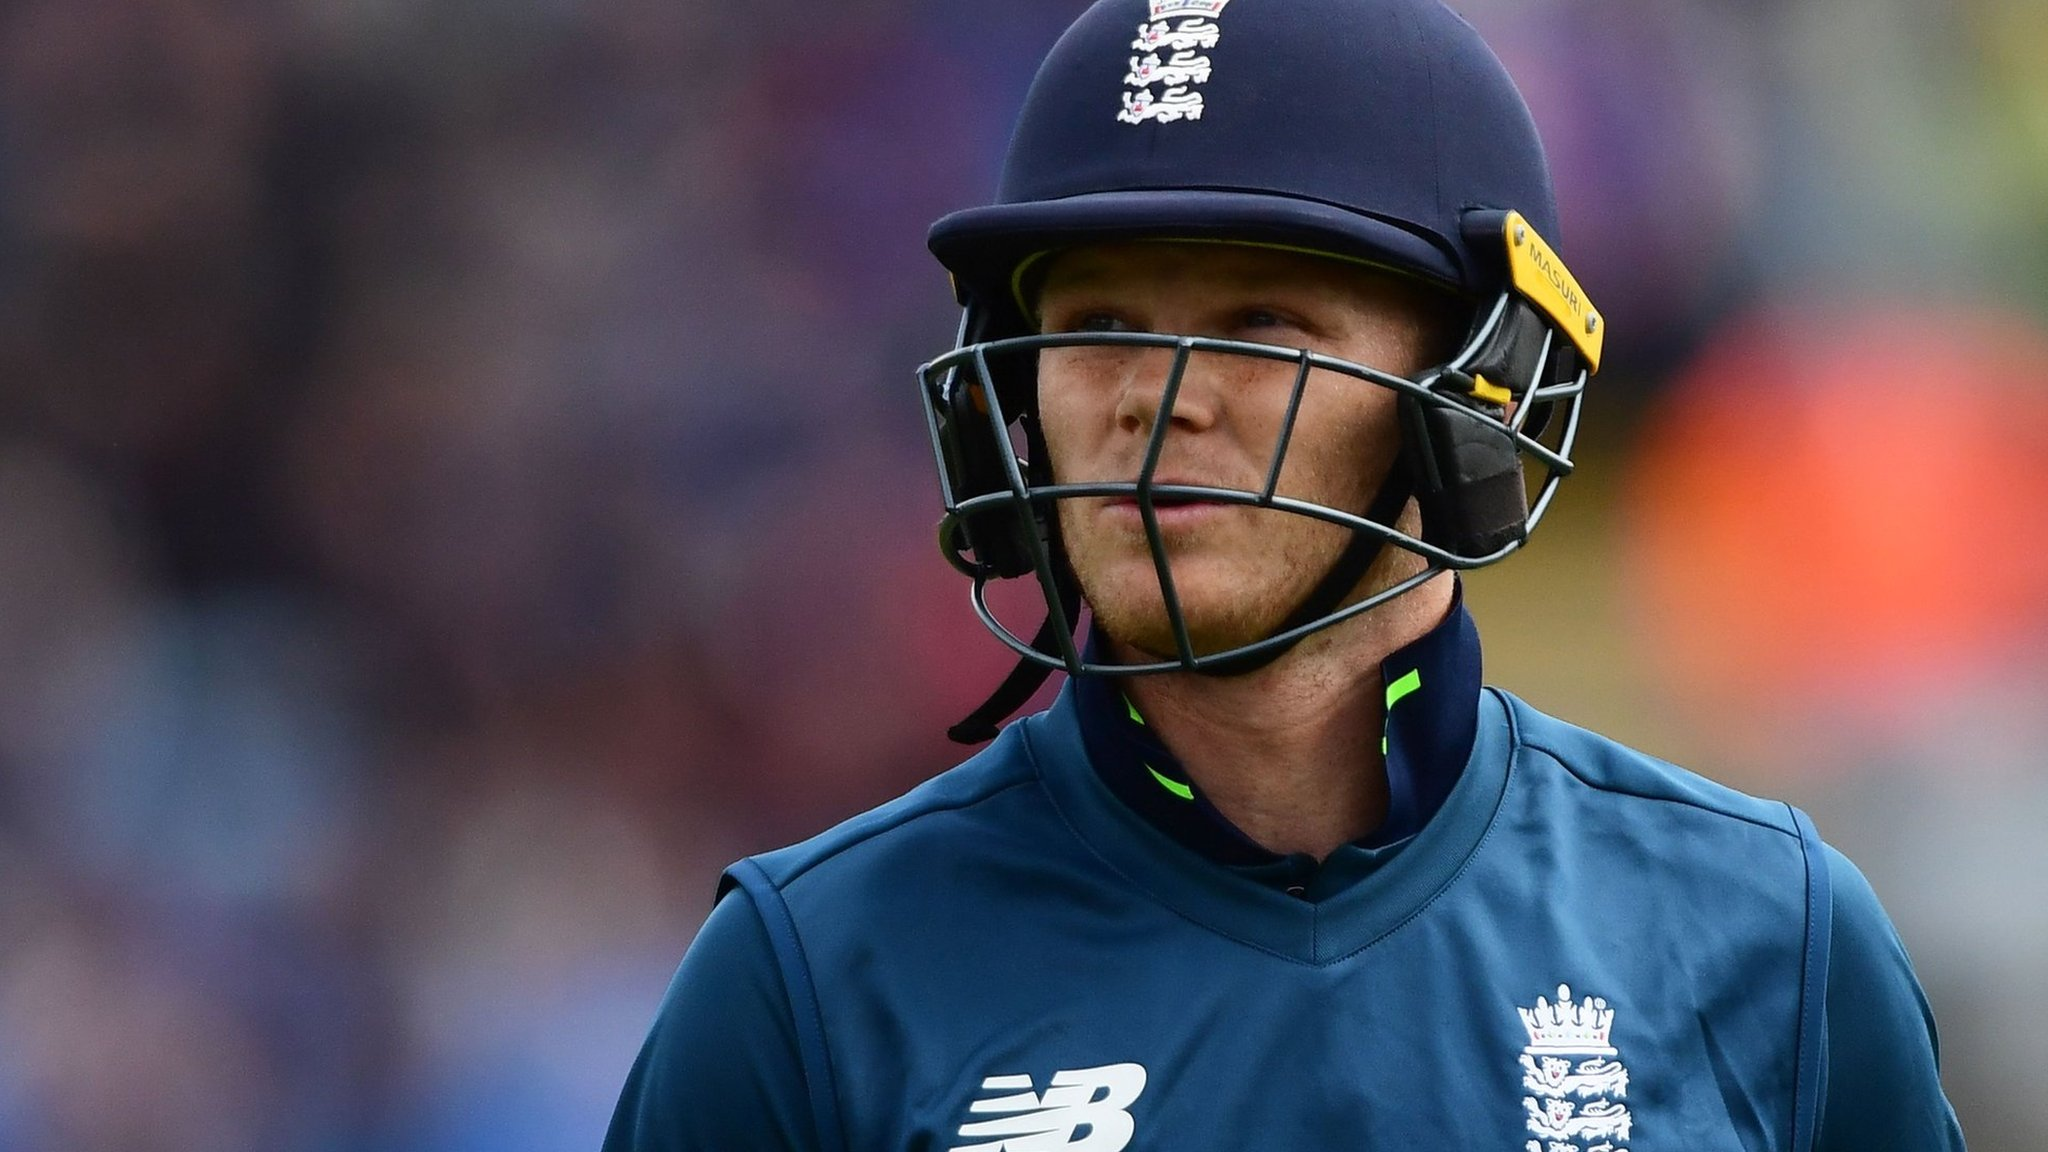 Sam Billings and Joe Denly: Kent captain and vice-captain sign new contracts